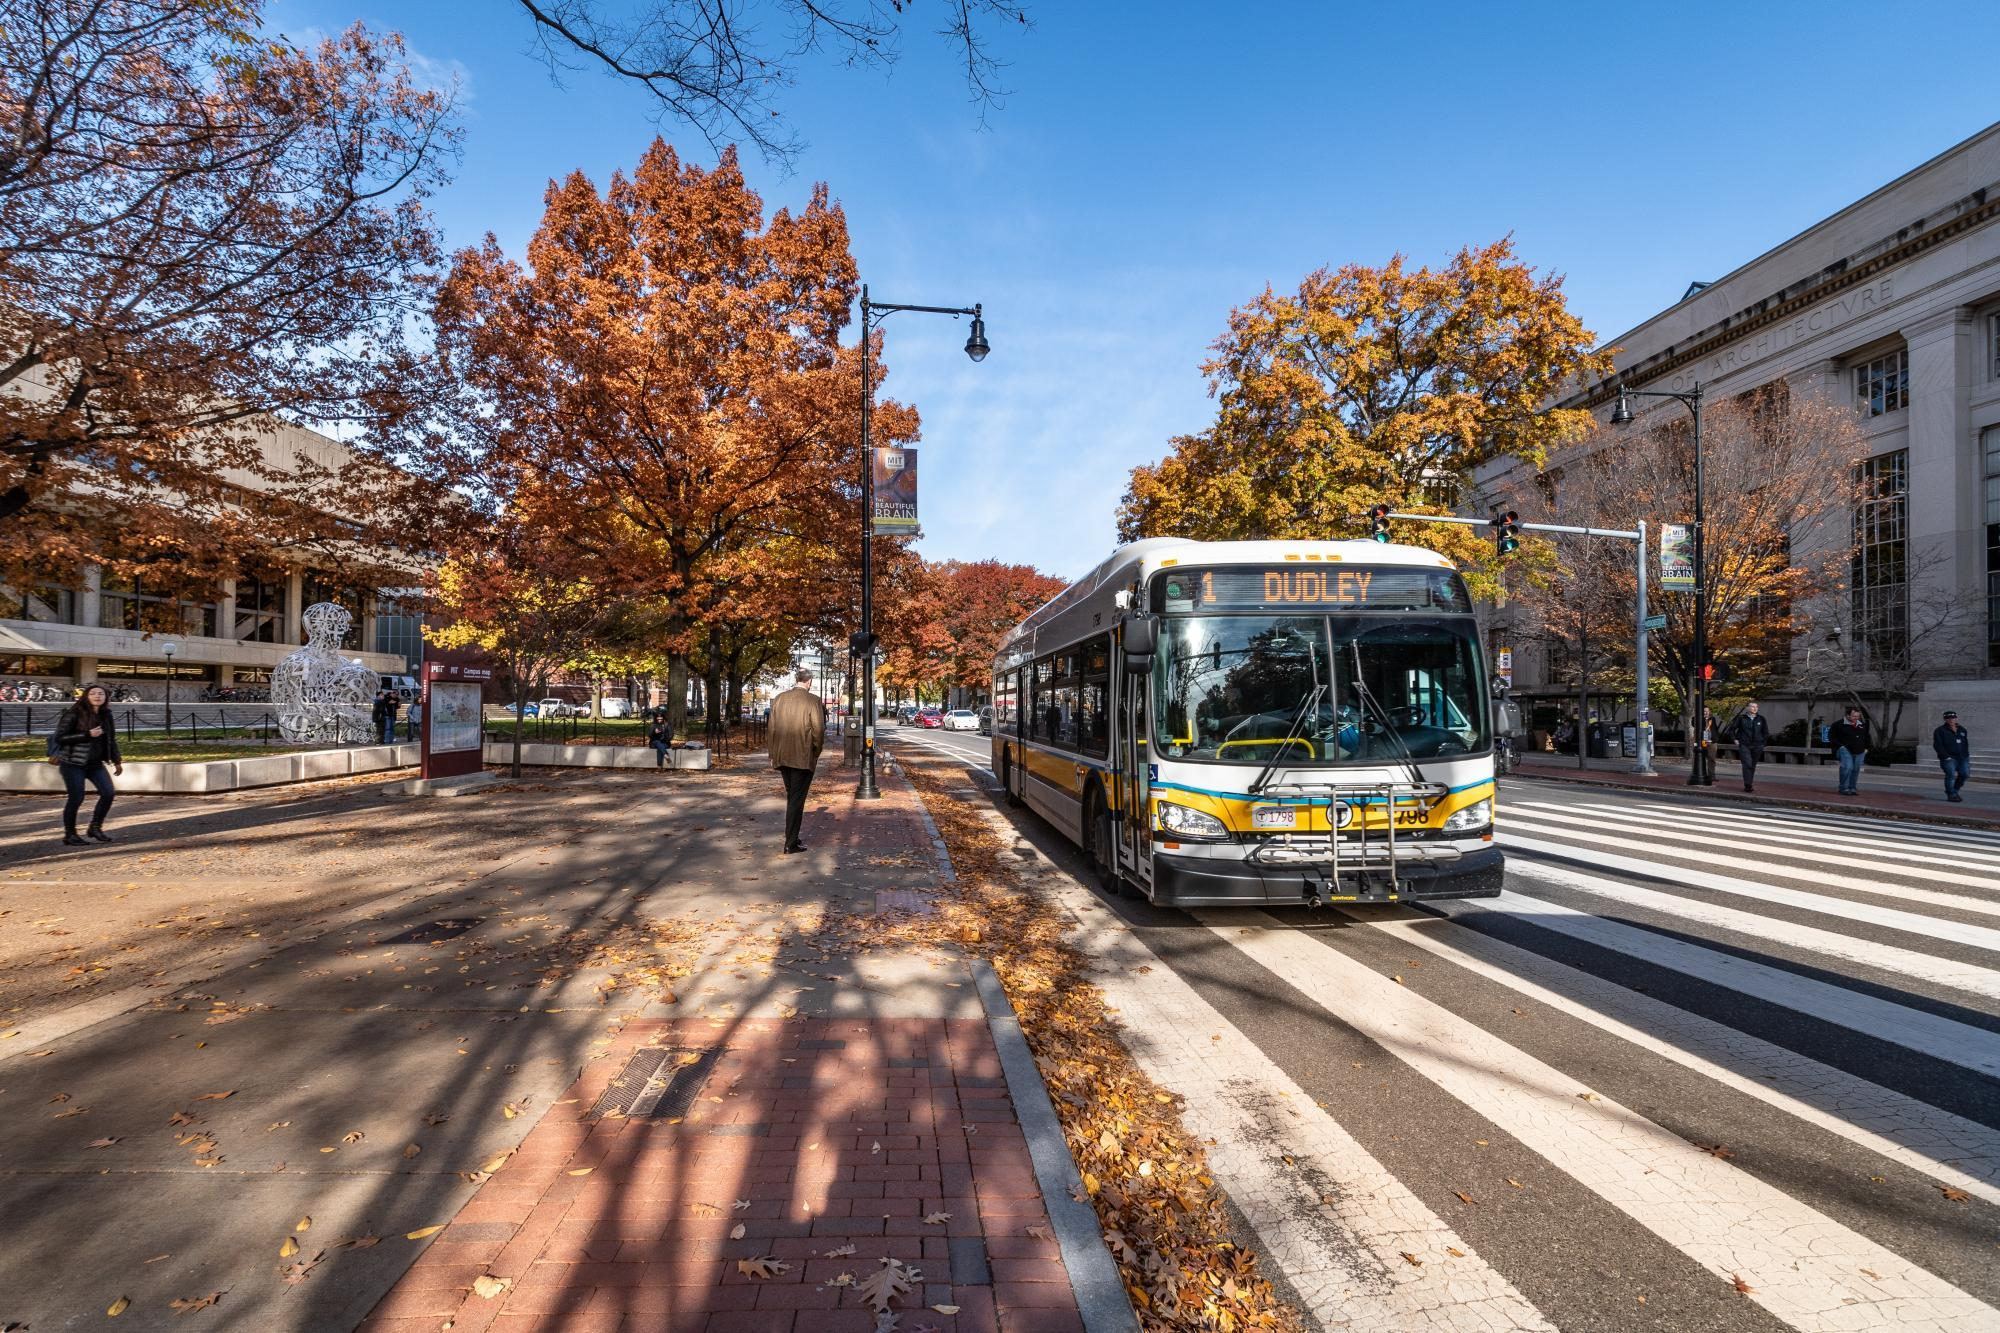 Route 1 bus on Massachusetts Avenue at the MIT crosswalk, with fall foliage in the background